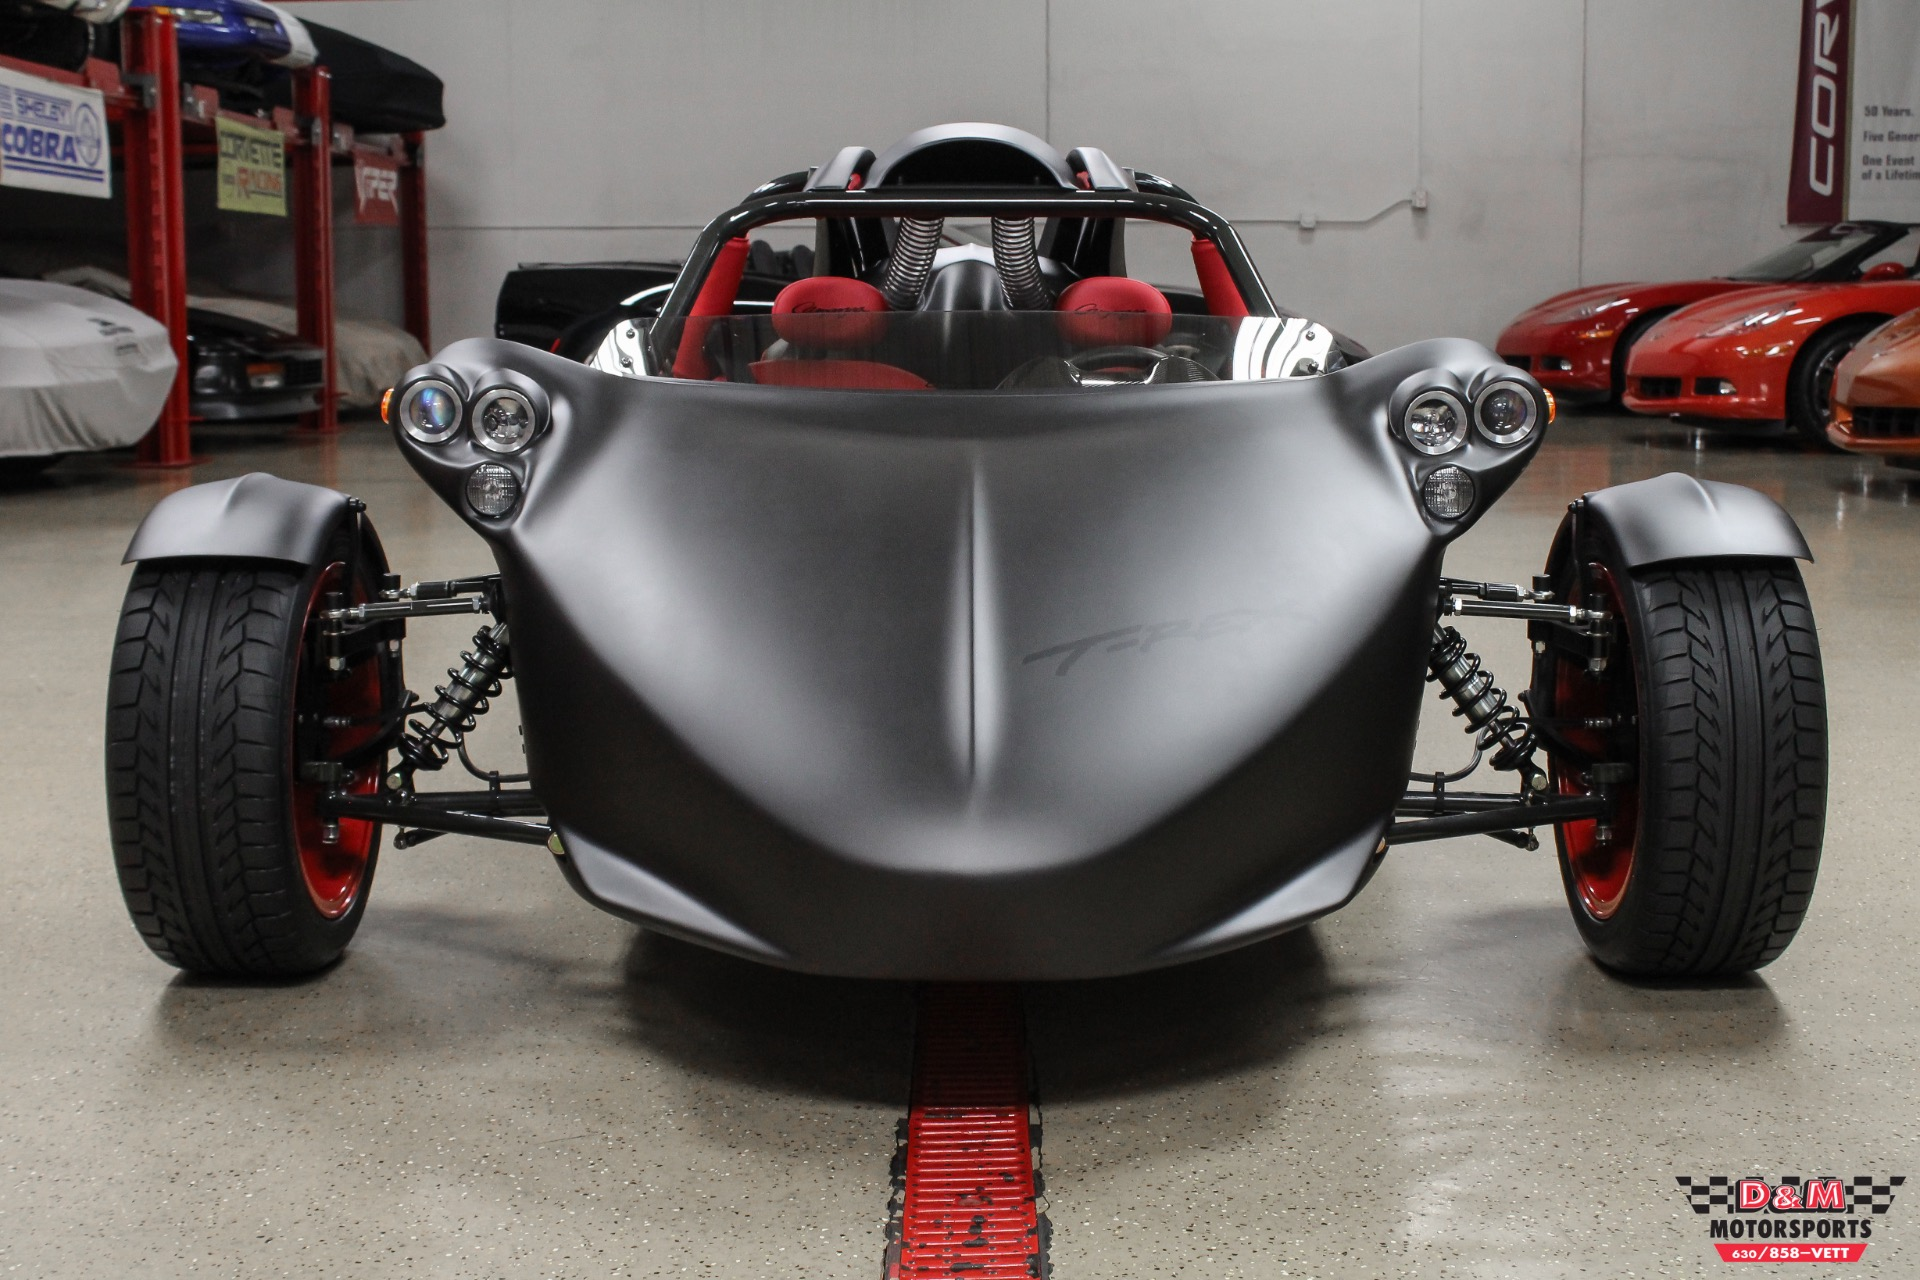 2016 campagna t rex 16s stock m5991 for sale near glen ellyn il new 2016 campagna t rex 16s glen ellyn il voltagebd